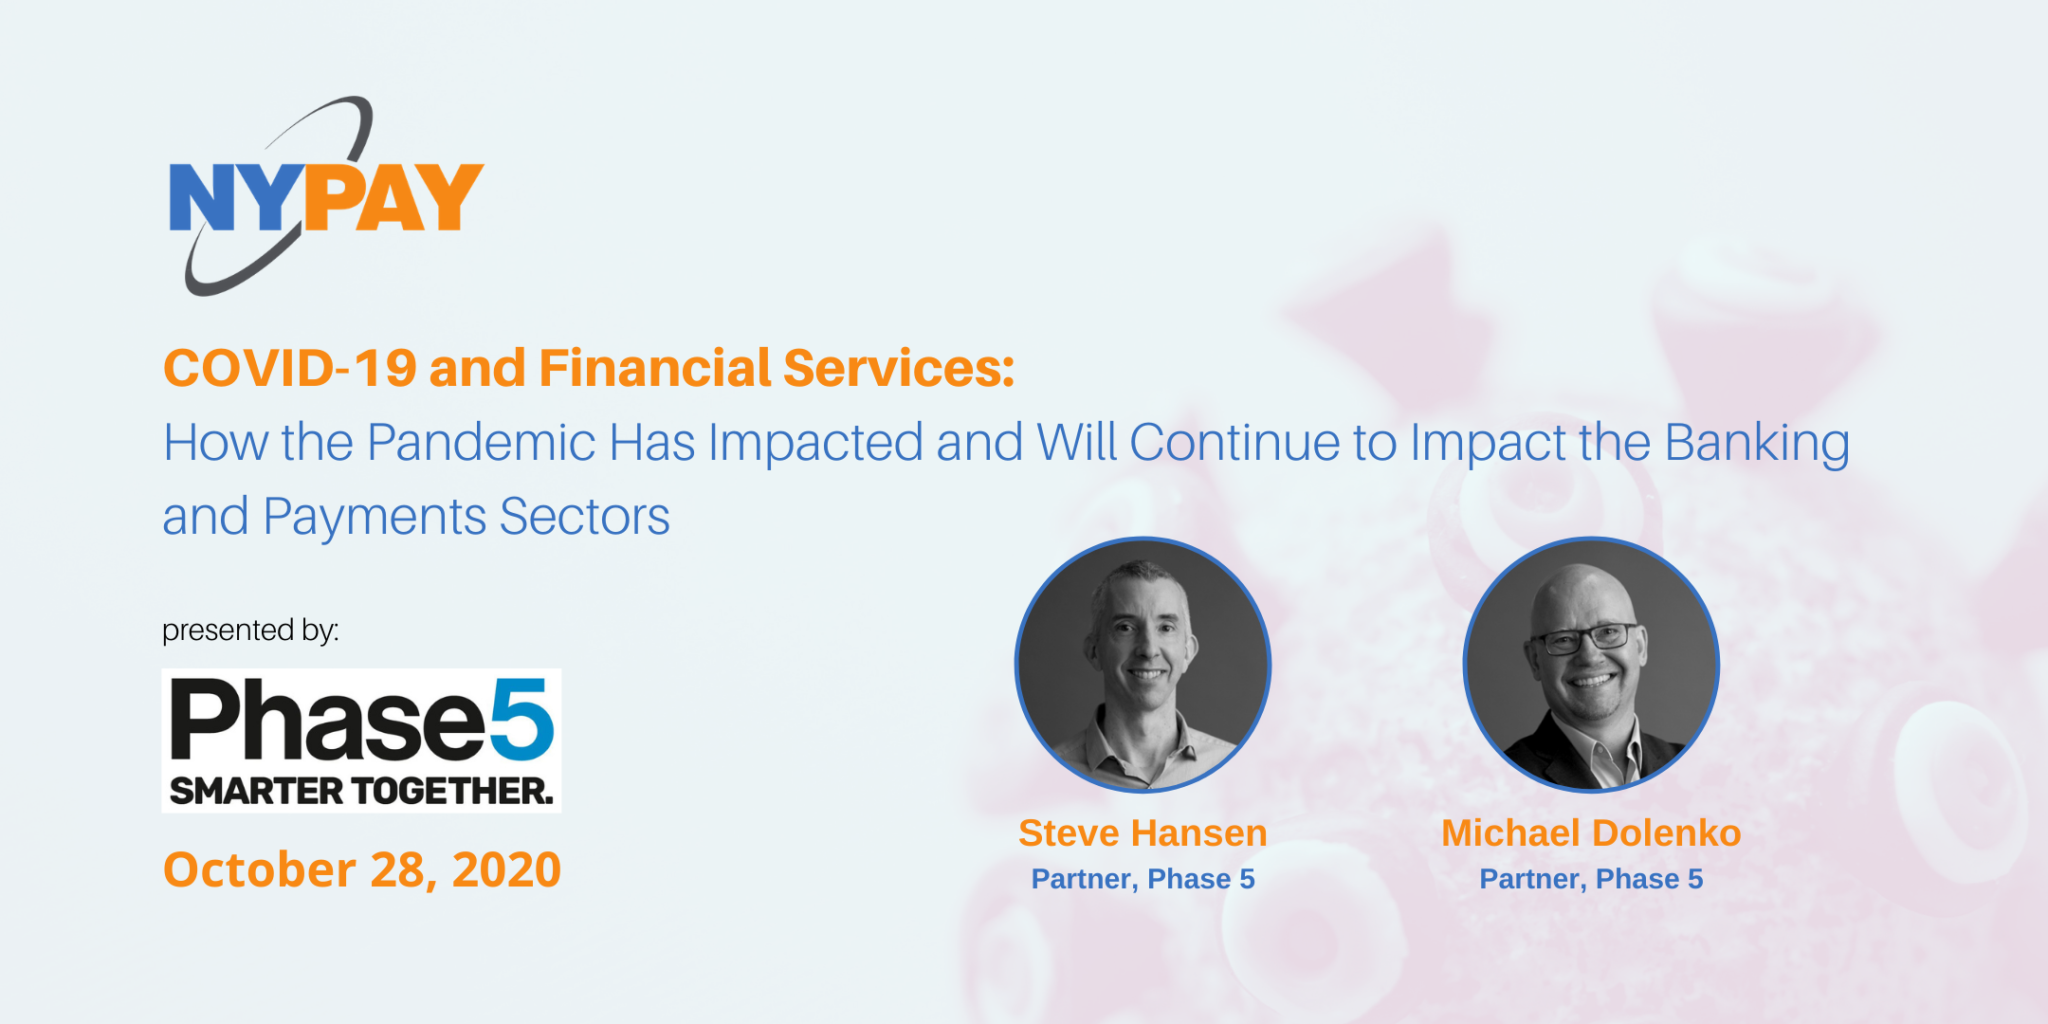 COVID-19 and Financial Services: How the Pandemic Has Impacted and Will Continue to Impact the Banking and Payments Sectors